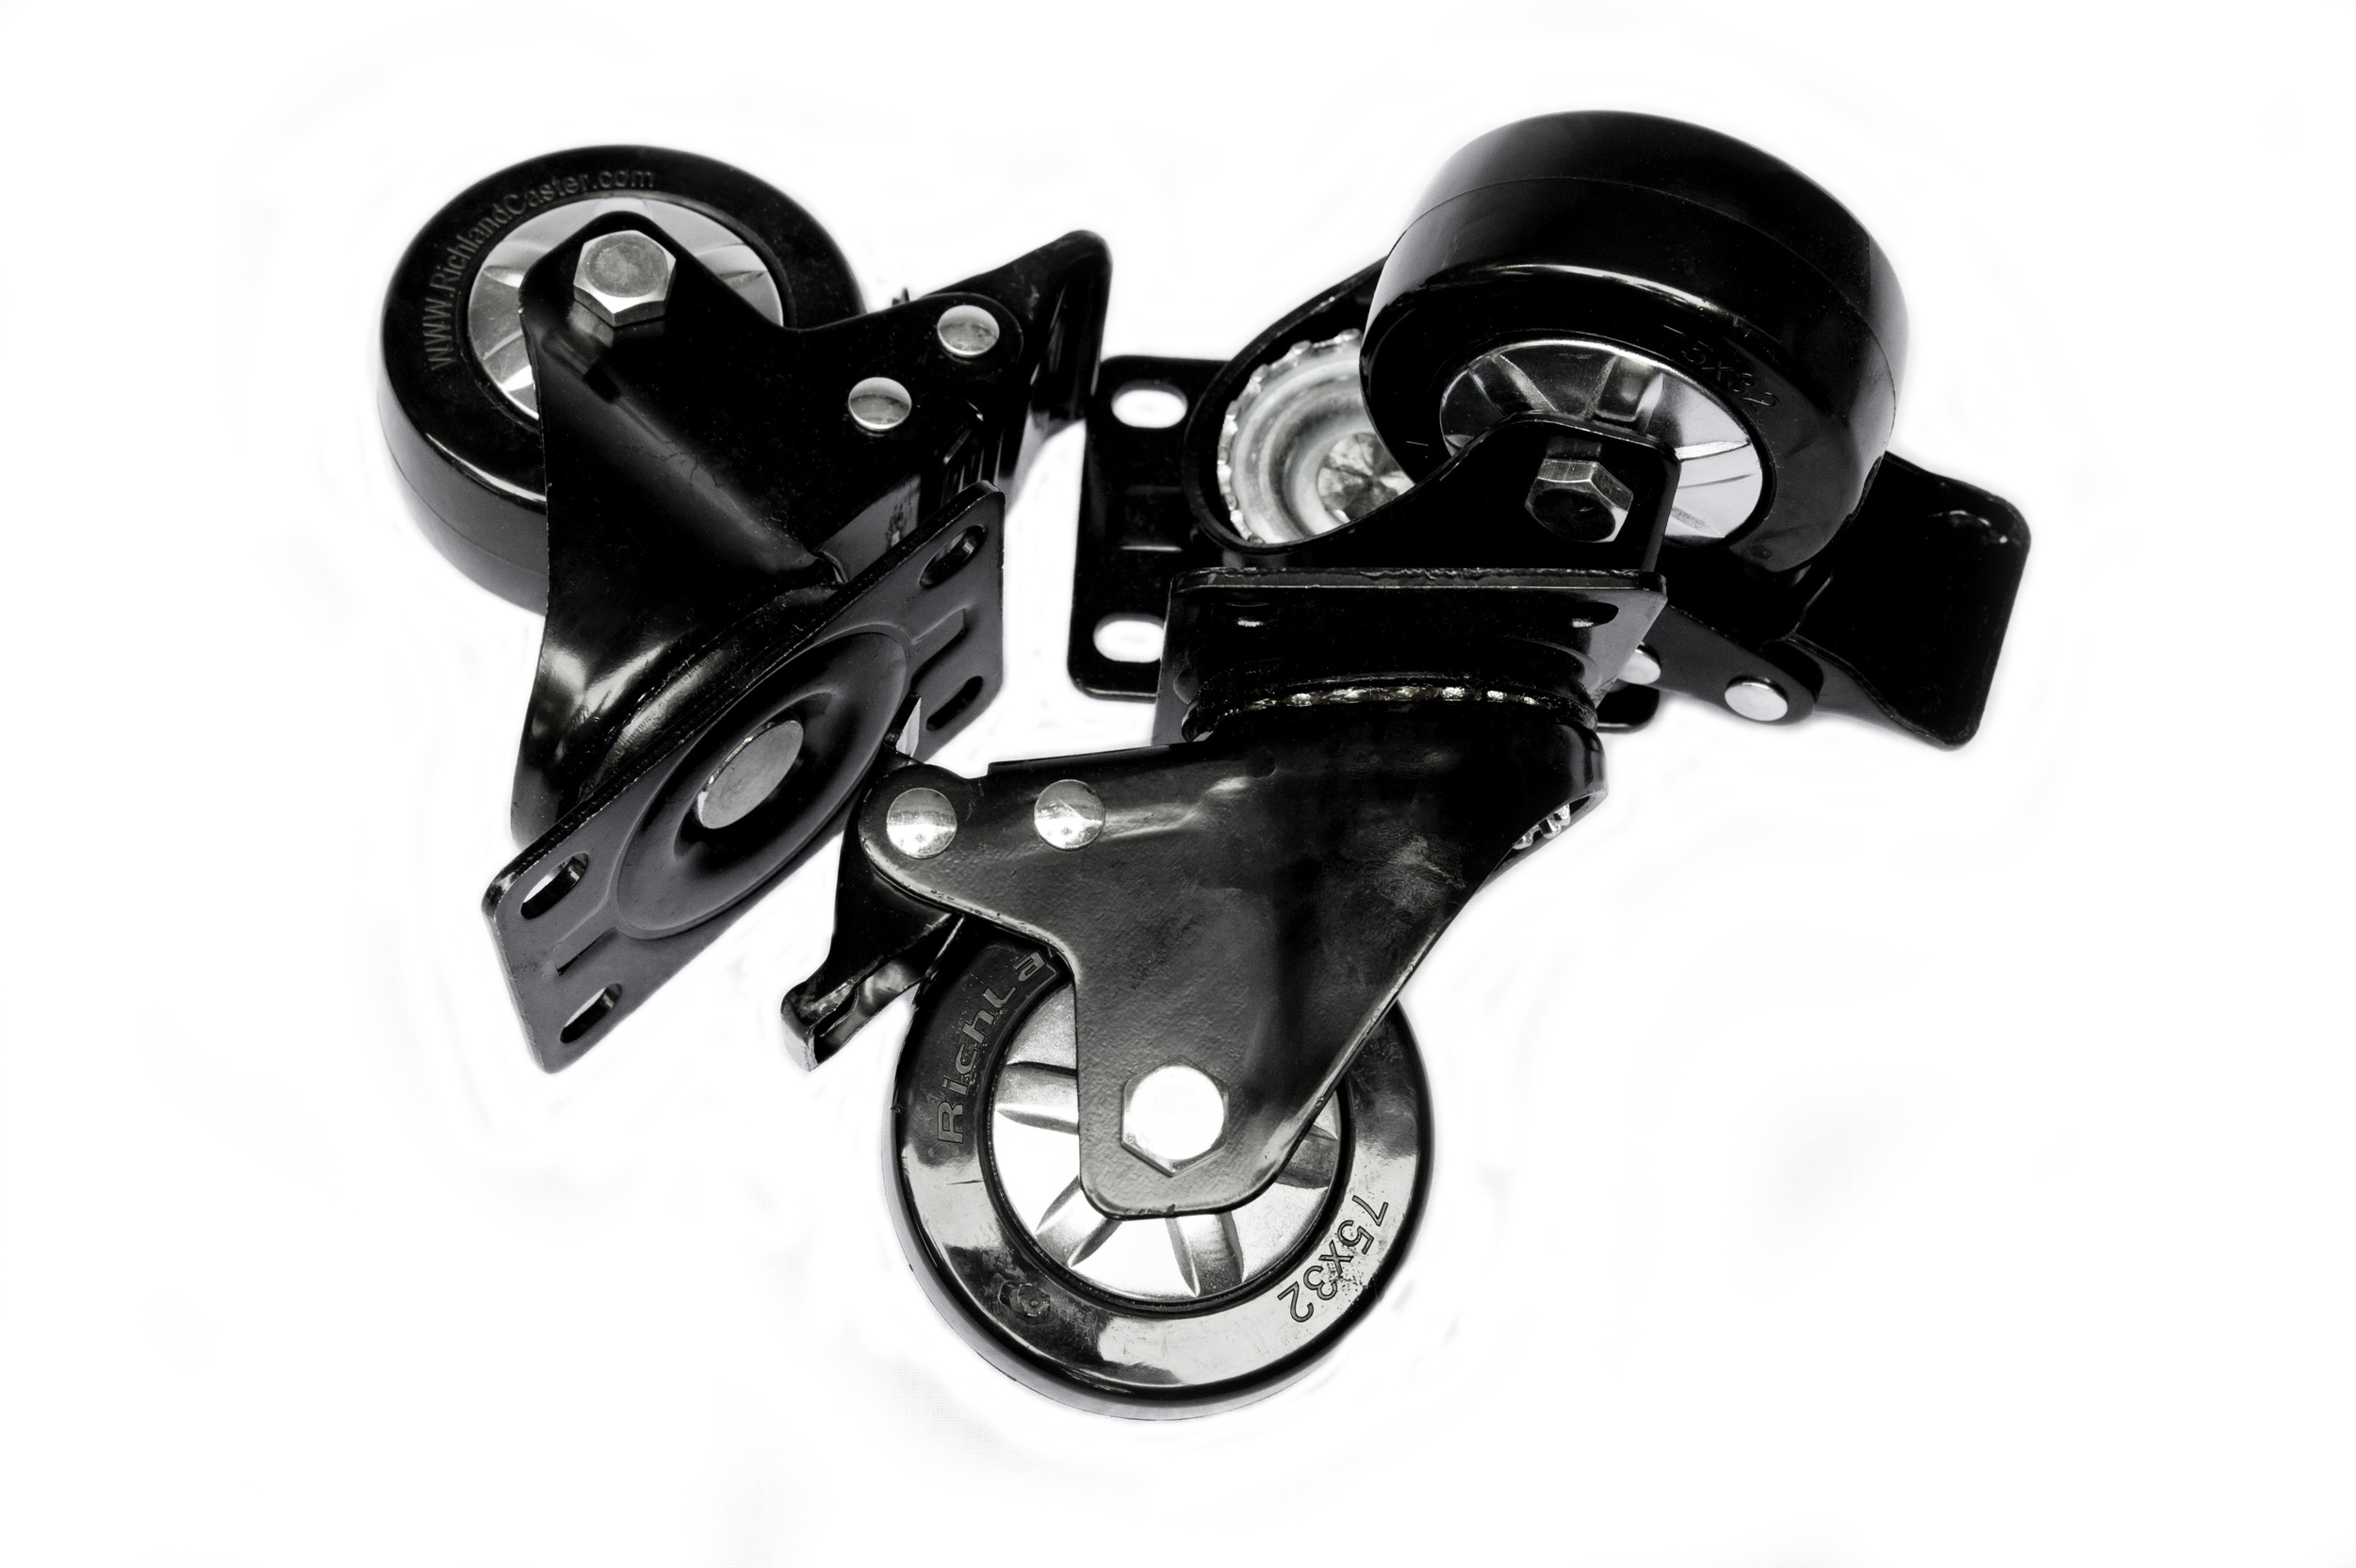 3+2 Caster Configuration - These are the 3 swivel casters with brakes